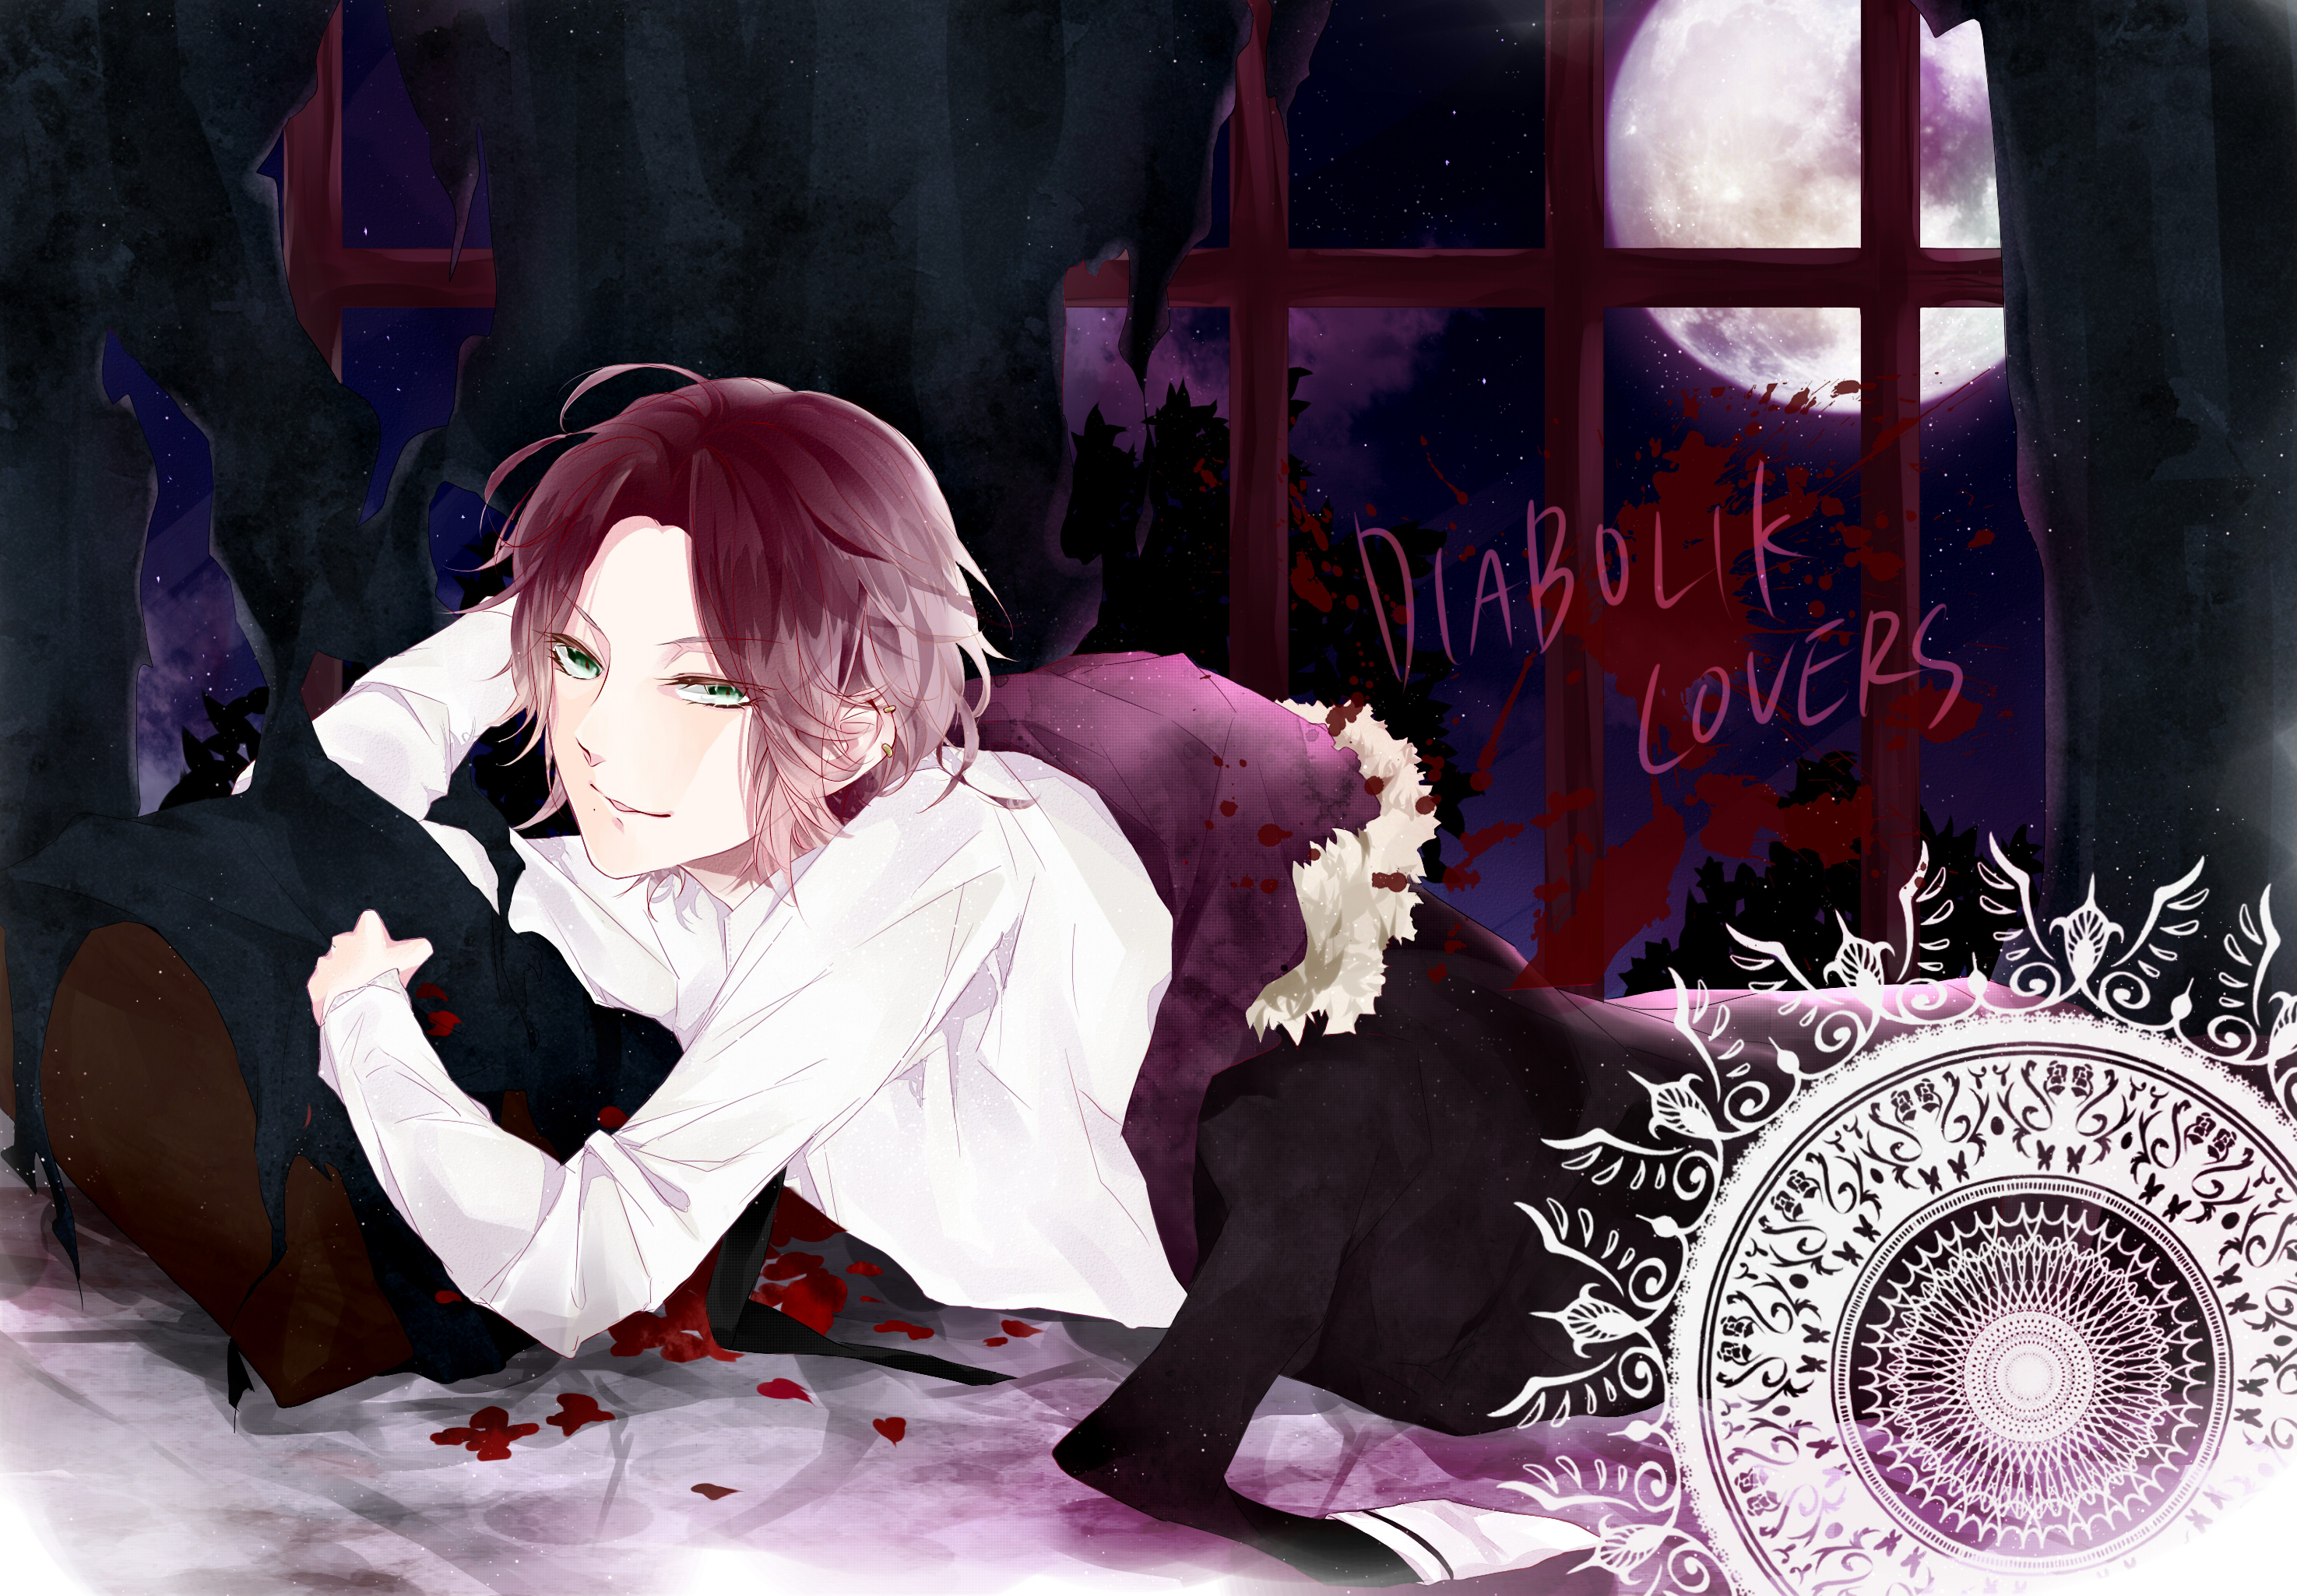 X Lover Wallpaper : 16 Diabolik Lovers HD Wallpapers Background Images - Wallpaper Abyss